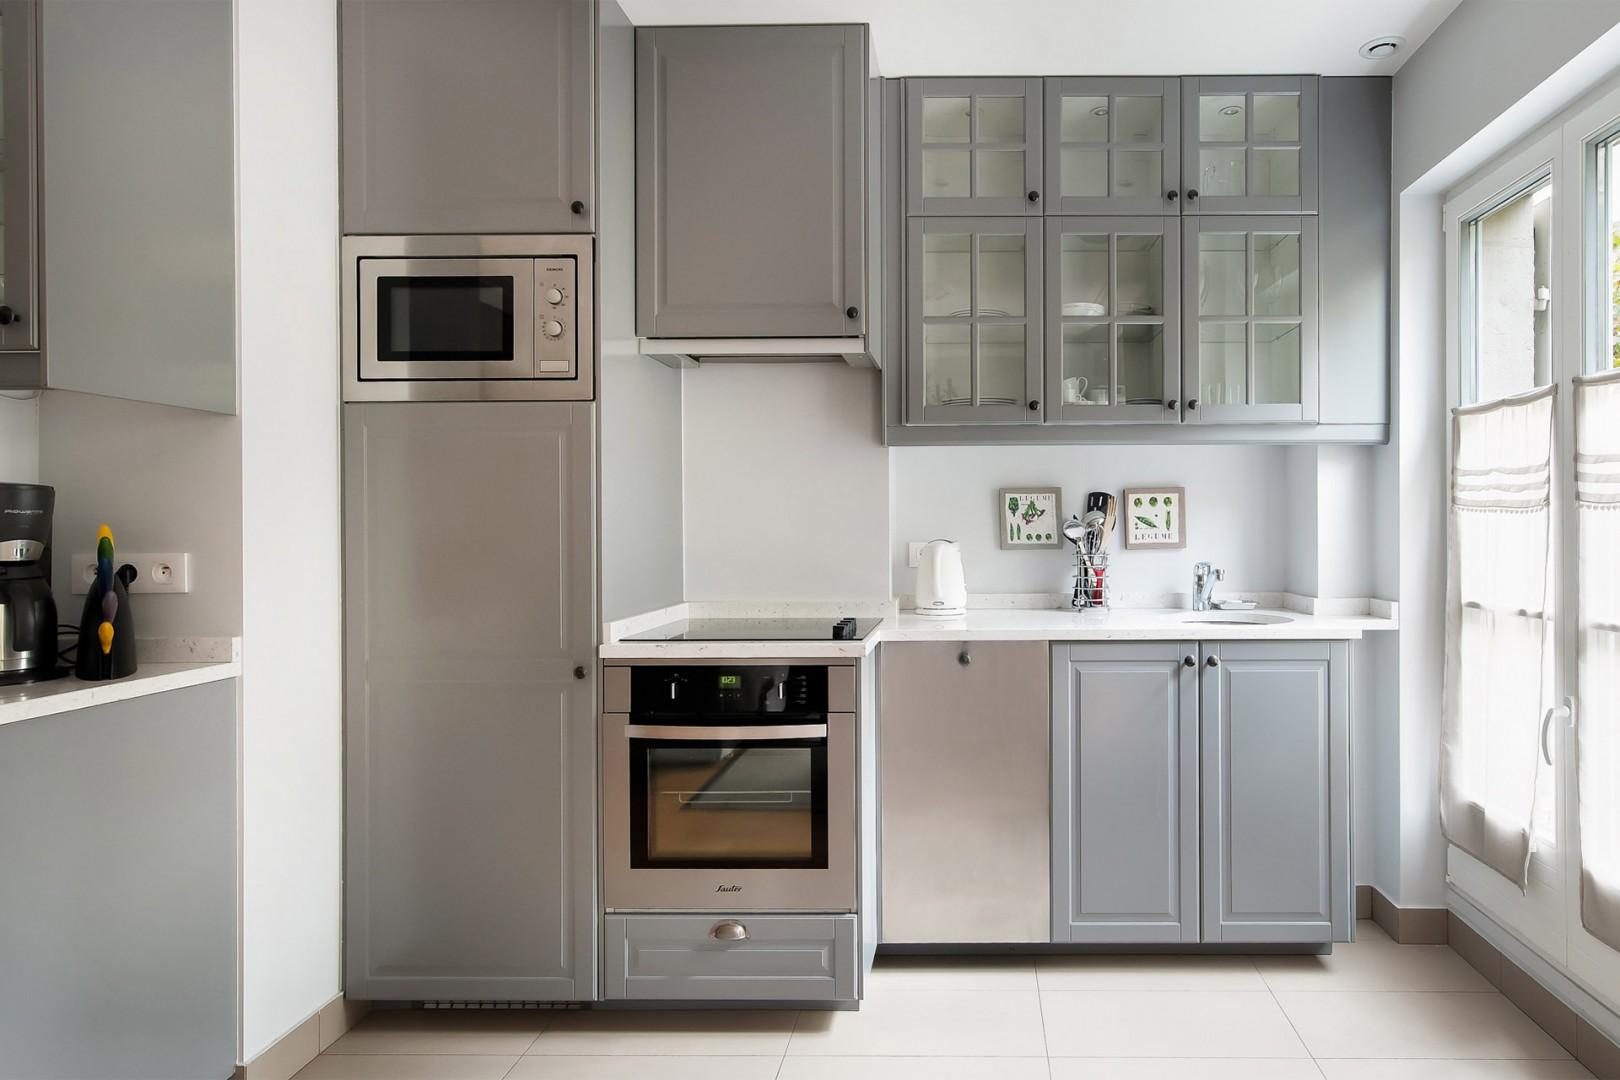 The sleek and modern kitchen has everything you need to prepare meals at home.